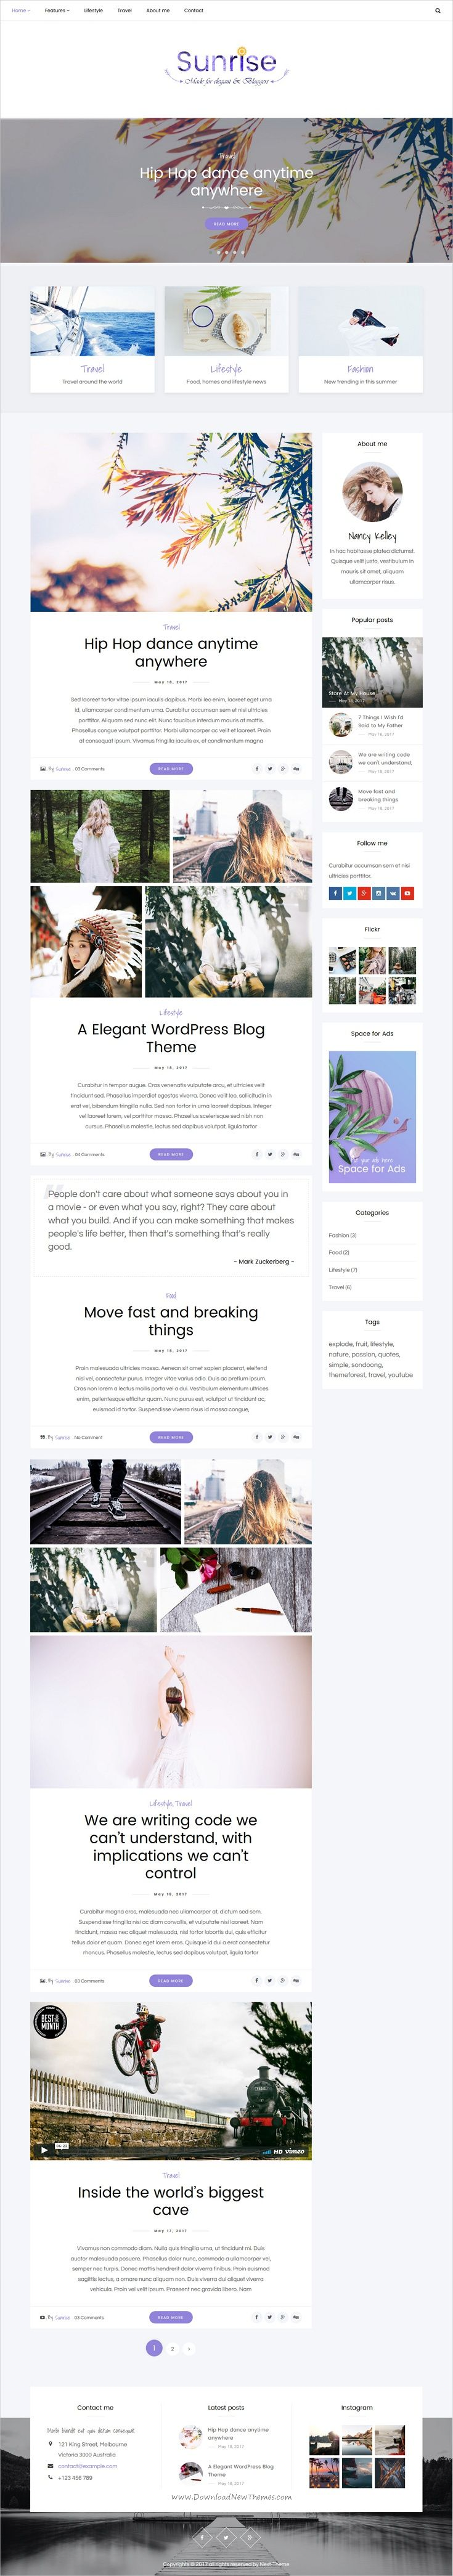 Sunrise is an elegant and modern design responsive #WordPress theme for #blog and #magazine websites with multiple homepage layouts download now..